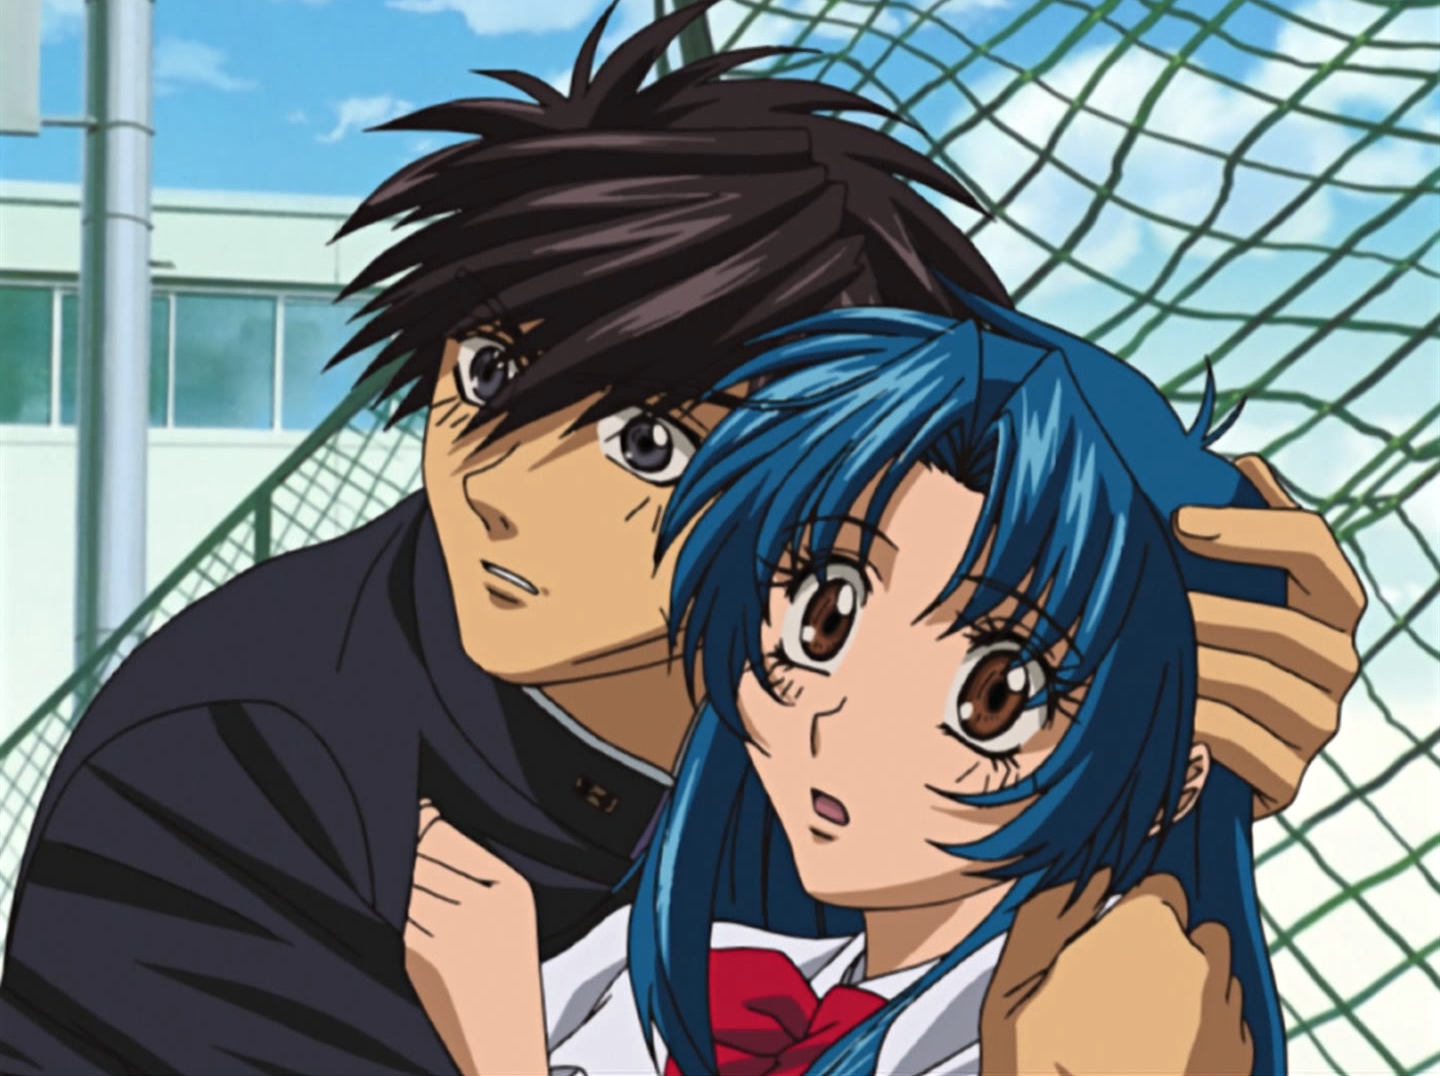 Sousuke attempts to protect Kaname from a perceived threat in a scene from the Full Metal Panic! TV anime.